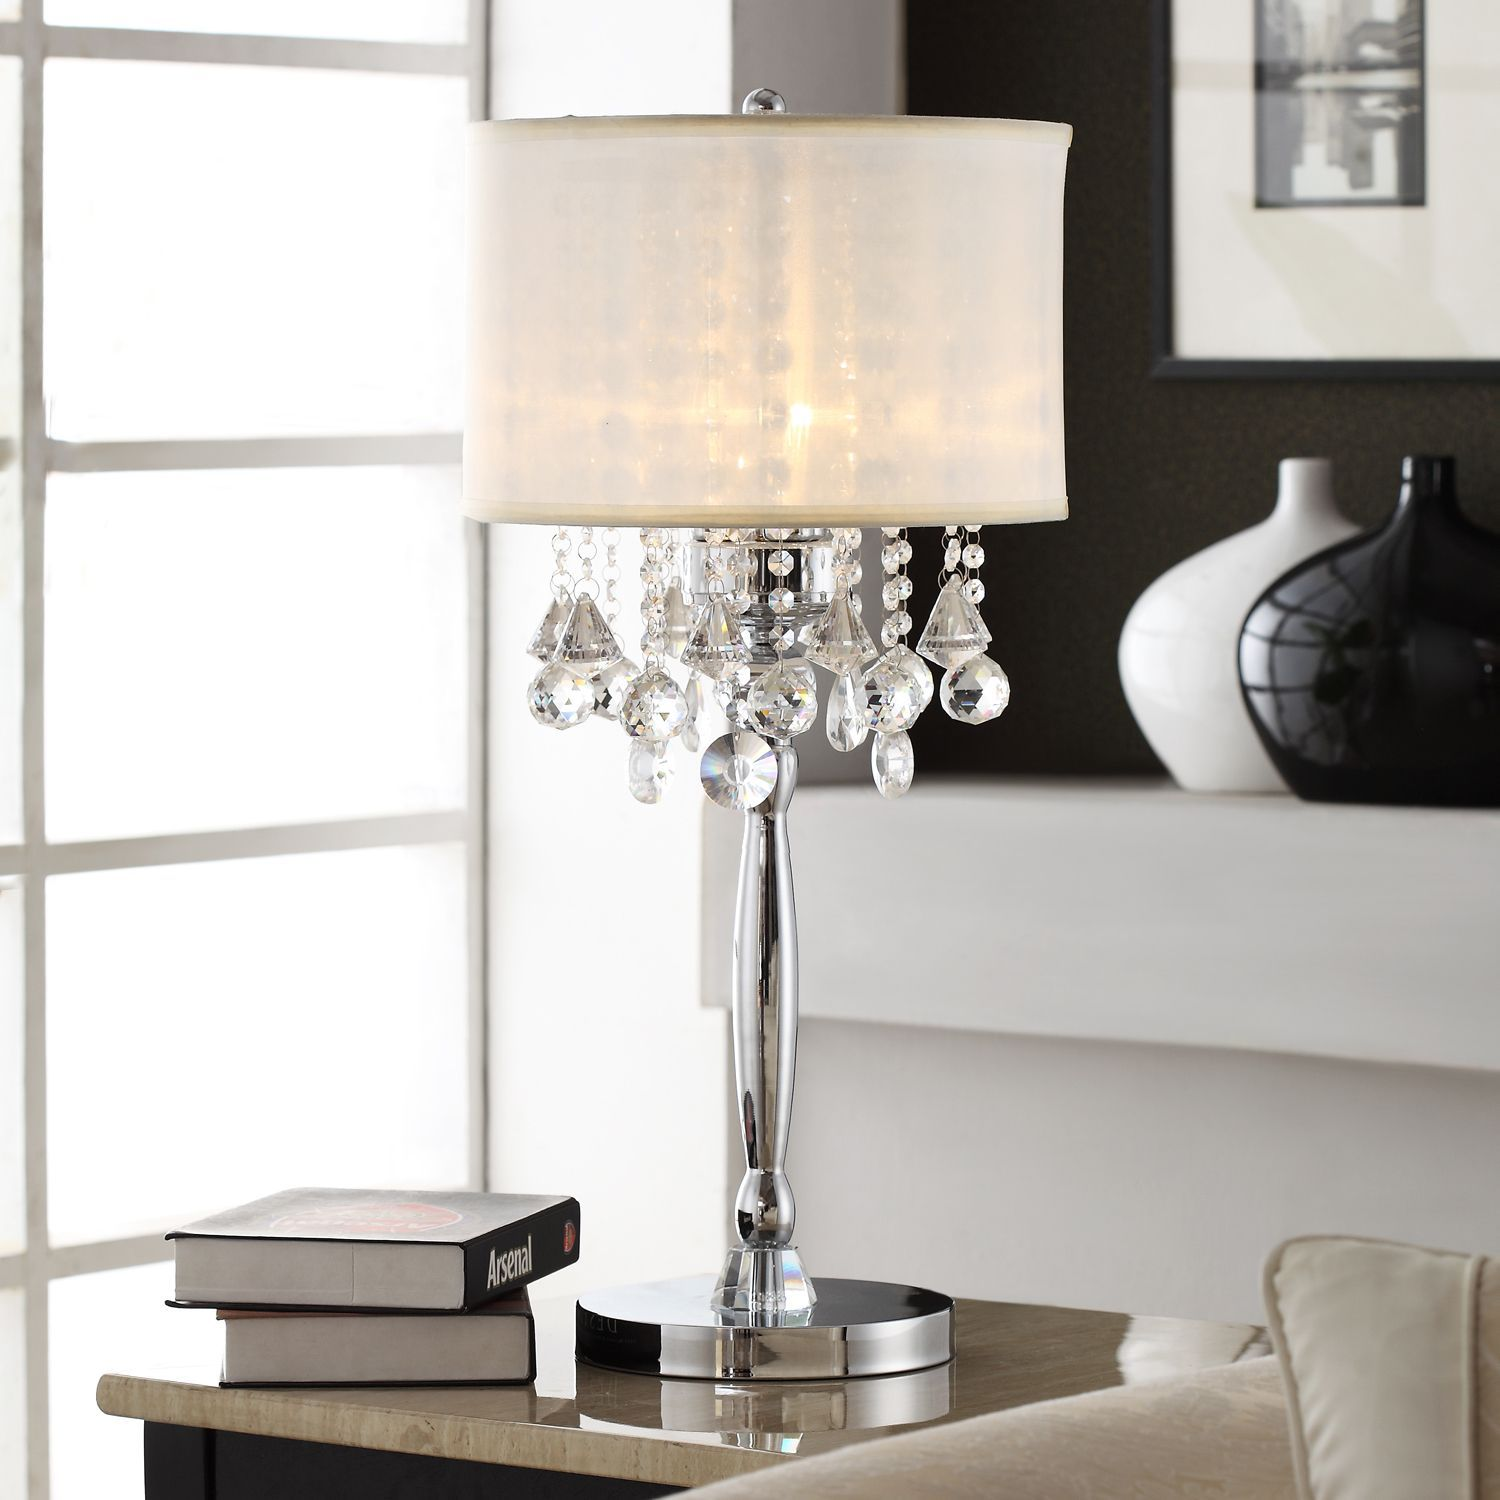 Silver Mist 3-light Crystal Chrome Table Lamp by iNSPIRE Q Bold by iNSPIRE Q